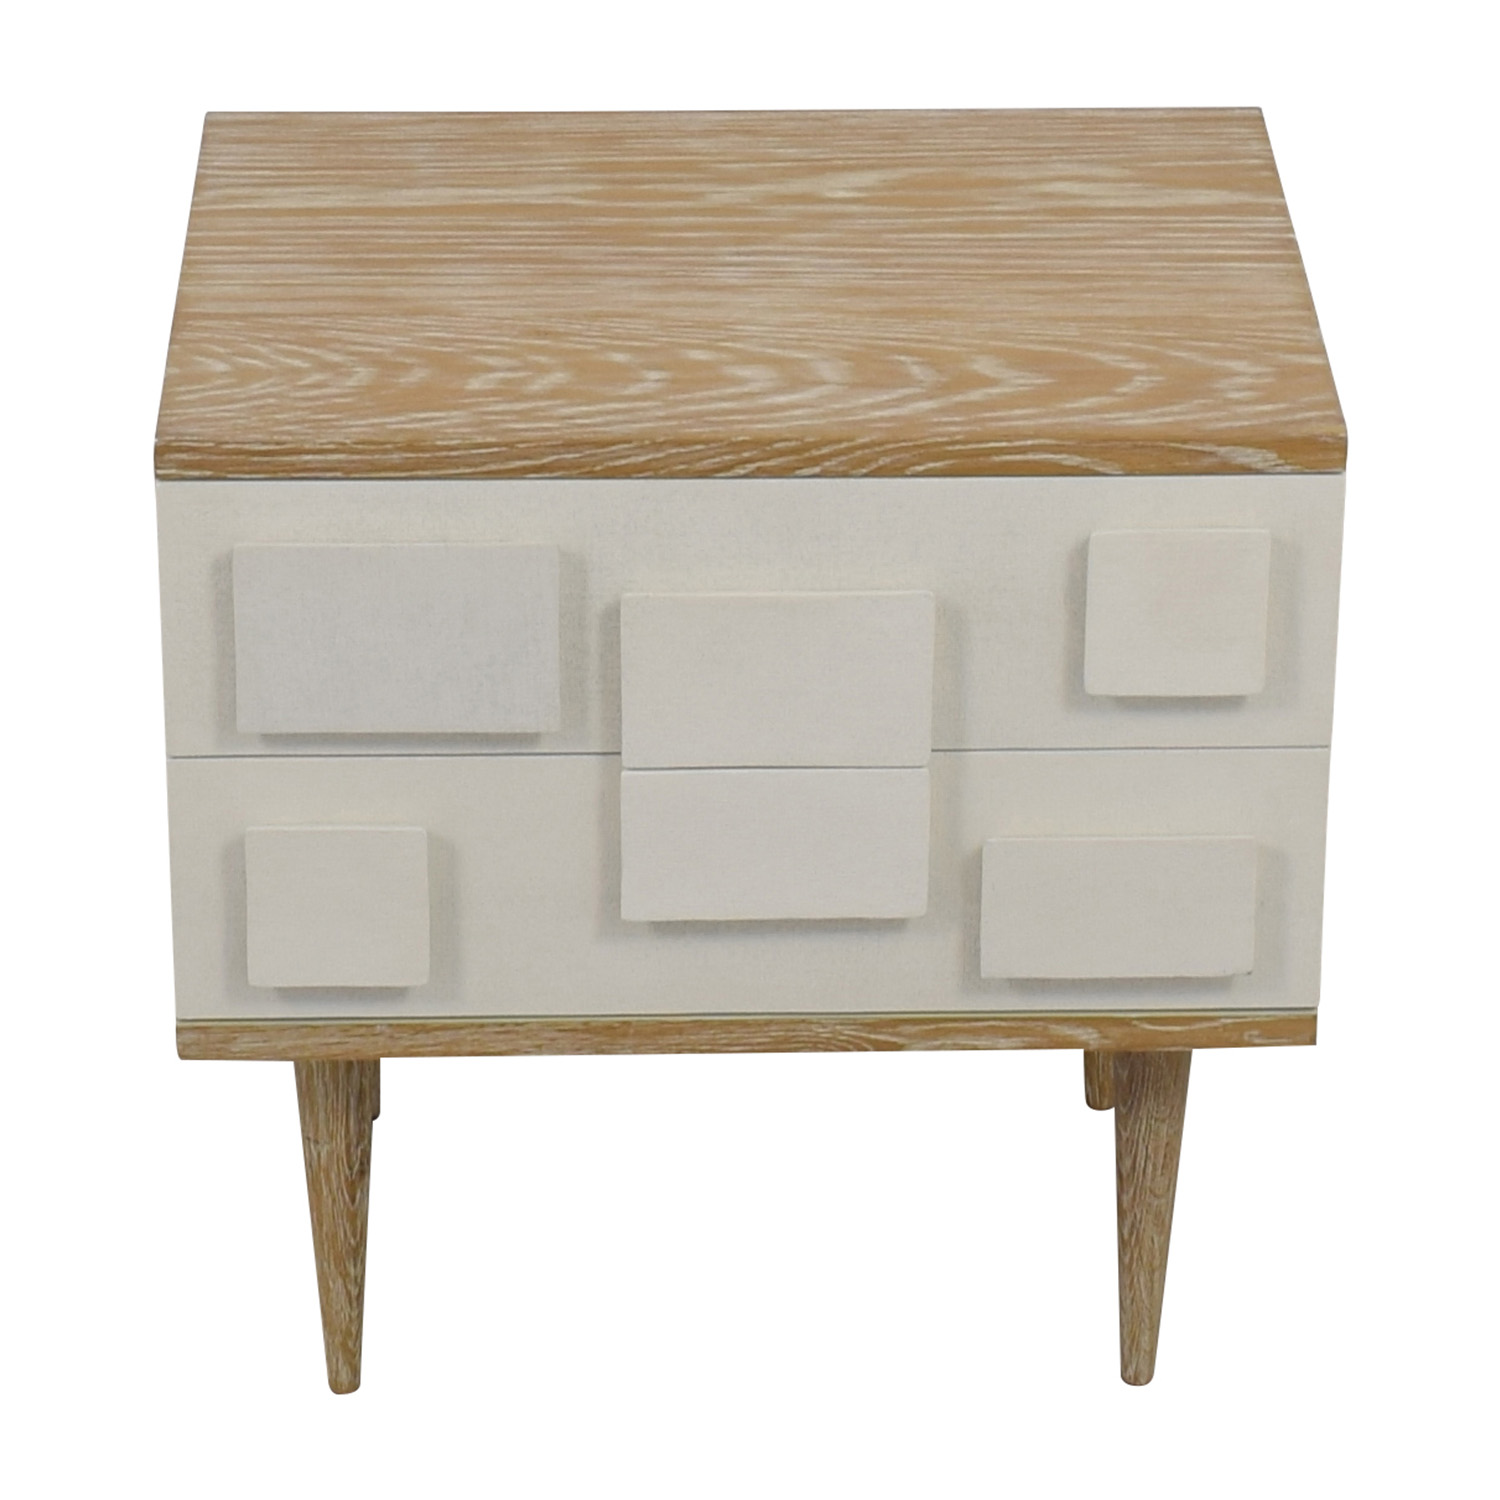 Bungalow 5 Bungalow 5 Ponti Two-Drawer Side Table End Tables